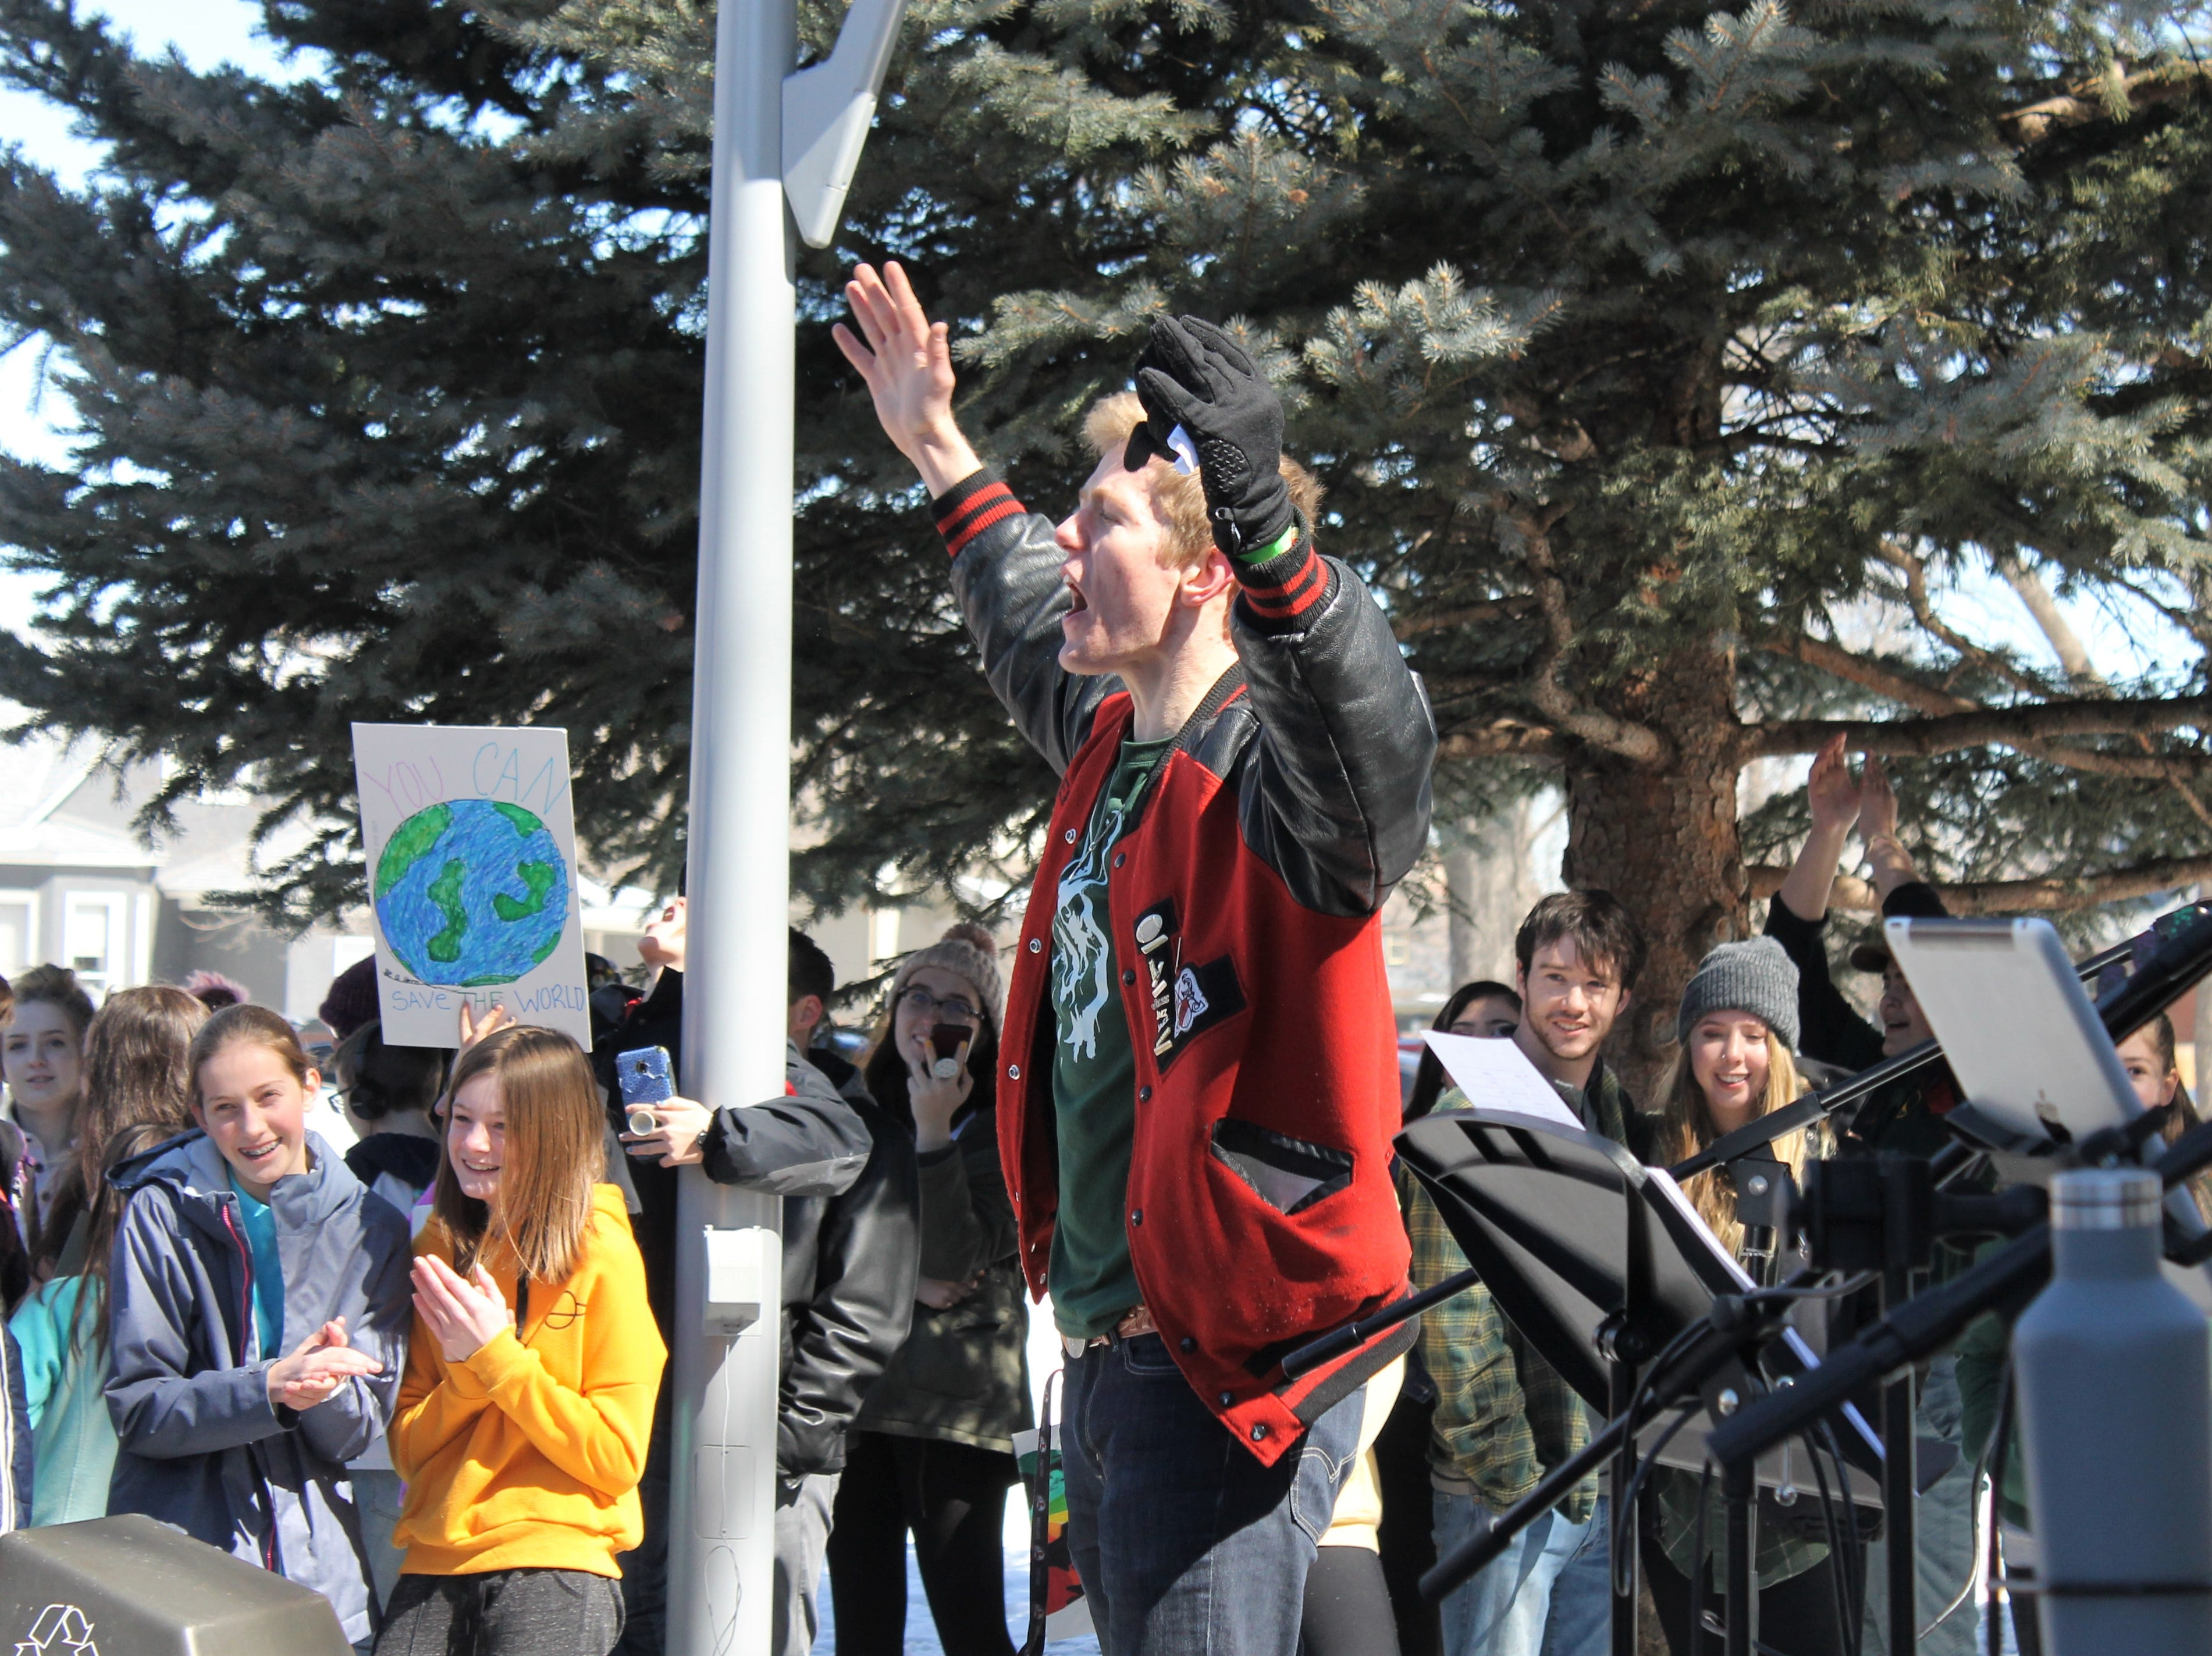 Ehret Nottingham leads a chant at the Northern Colorado Climate Strike March 15, 2019. Hundreds of students from Thompson School District and Poudre School District ditched class to call for better climate policy.